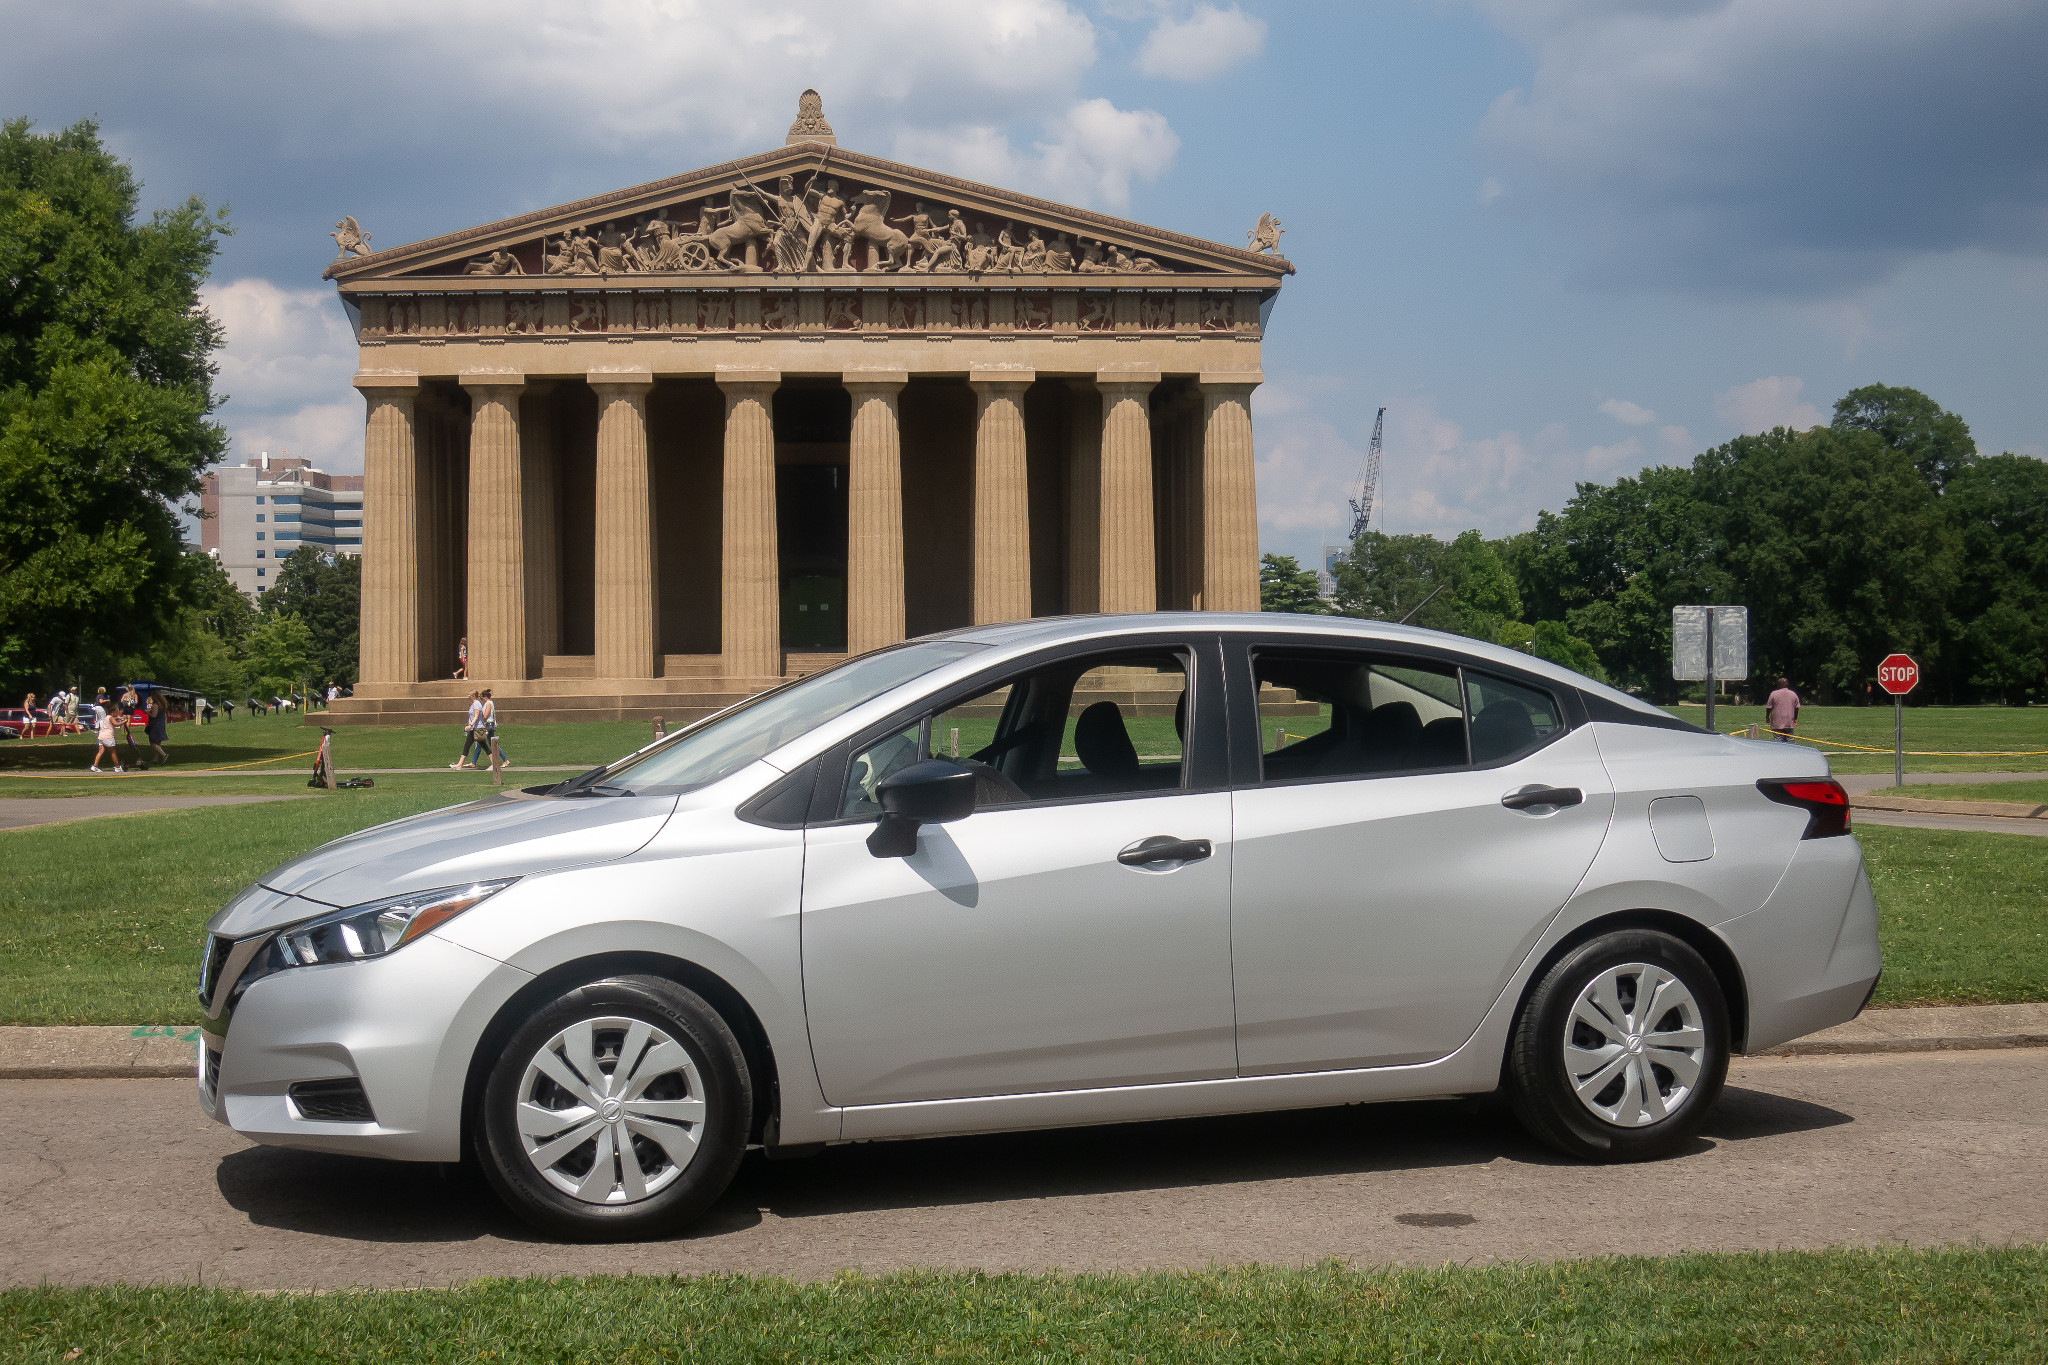 2020 Nissan Versa Not the Cheapest New Car, But It's a Helluva Better Value